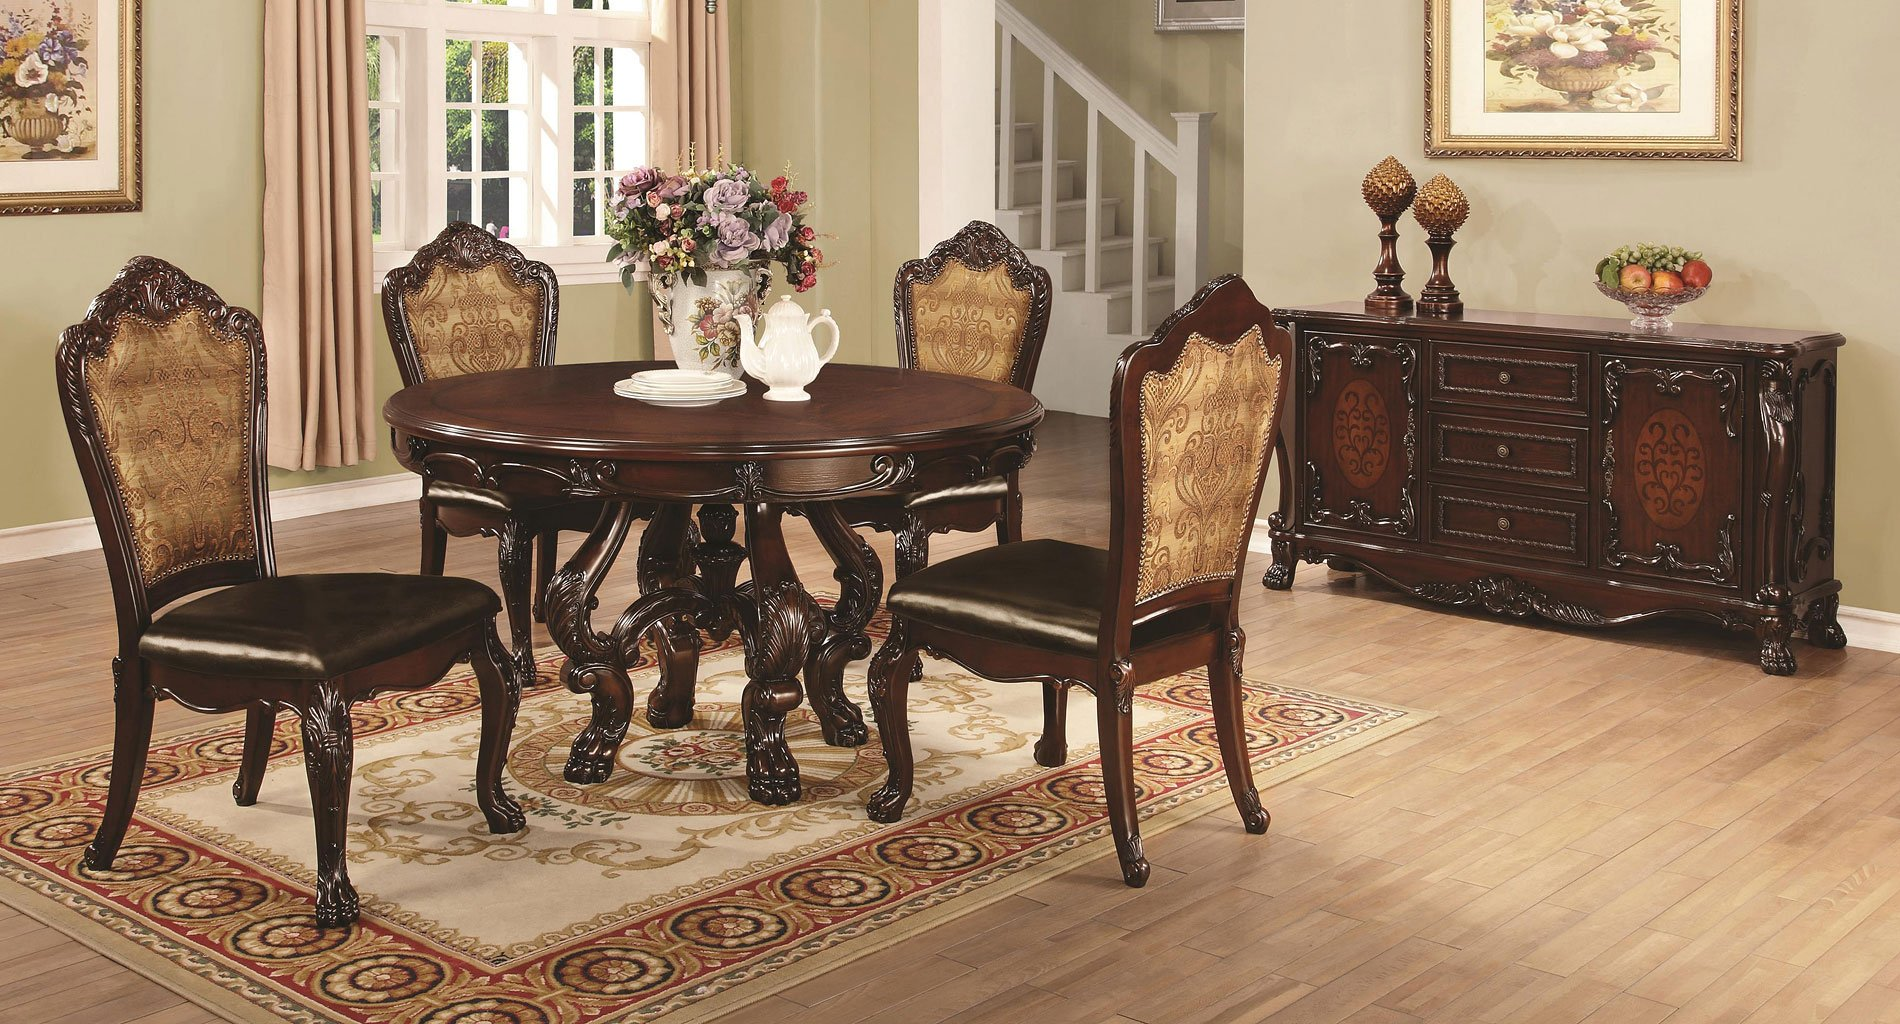 Benbrook Round Dining Room Set Casual Dining Sets Dining Room And Kitchen Furniture Dining